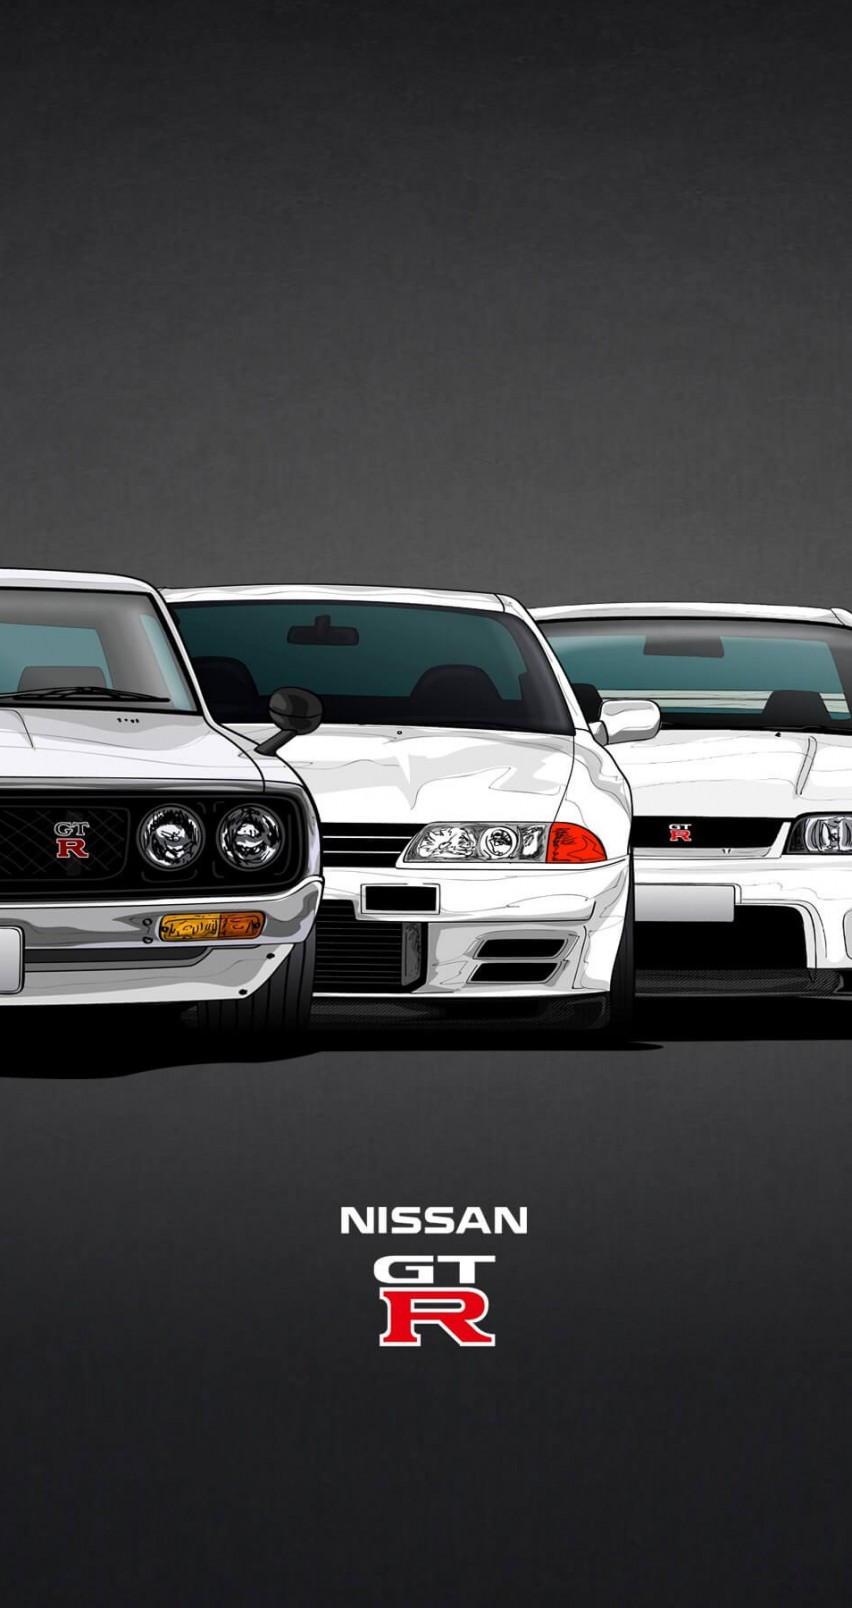 48 Nissan Gtr Iphone 6 Wallpaper On Wallpapersafari